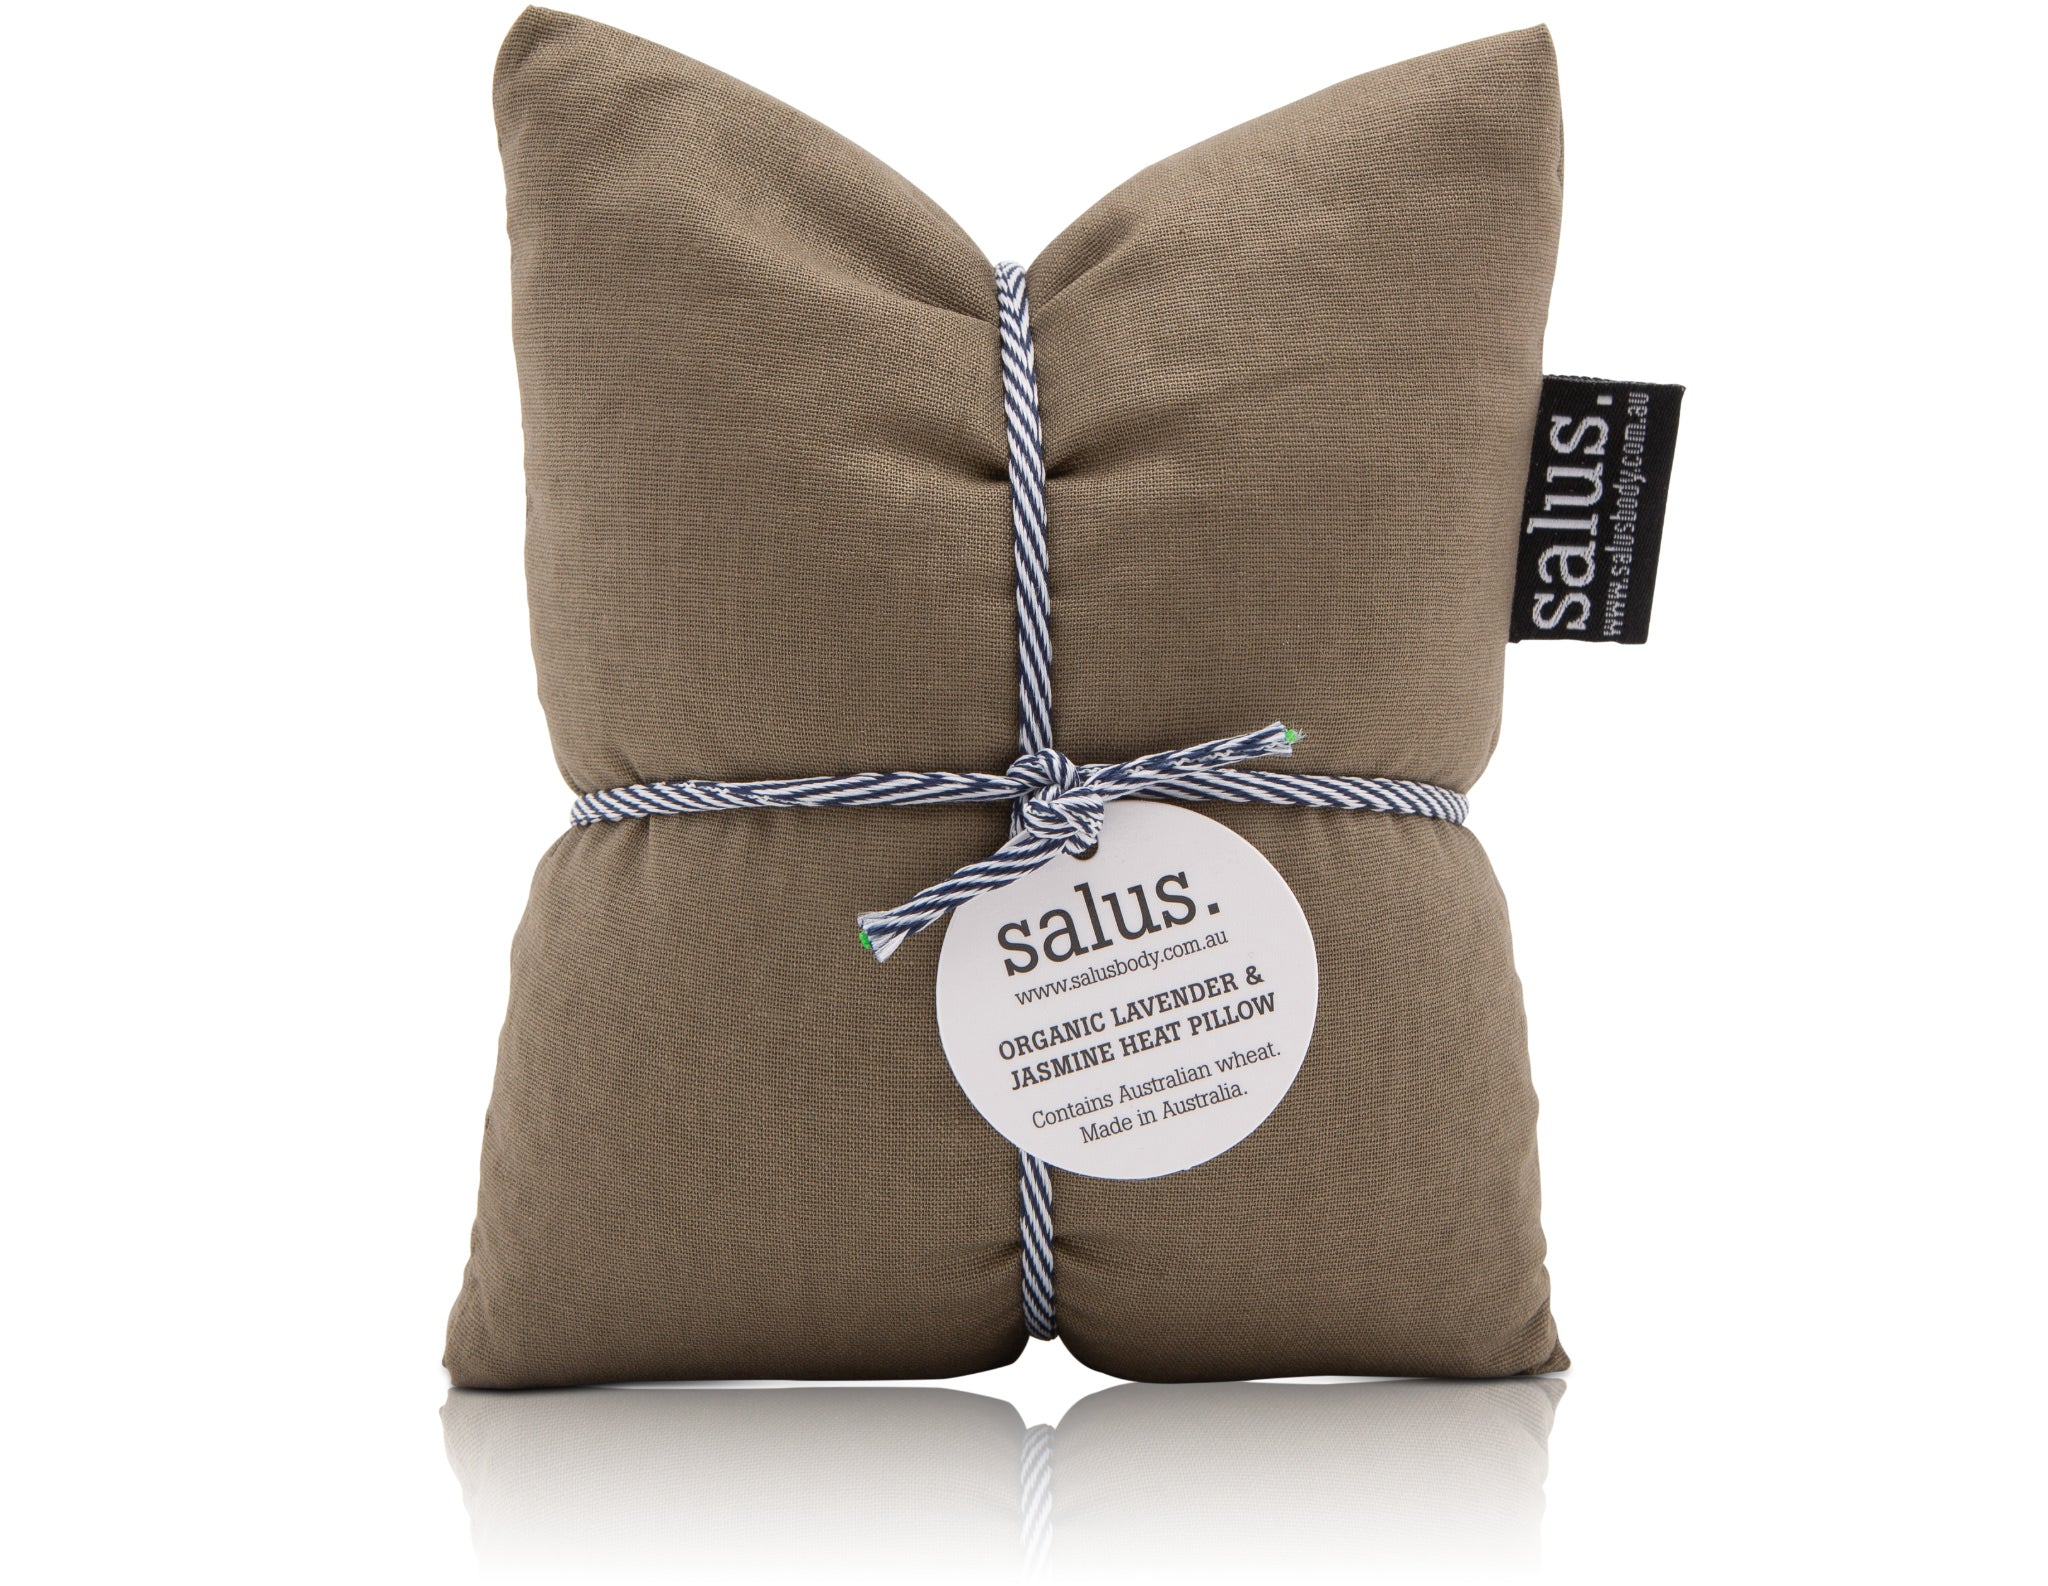 Olive Lavender & Jasmine Heat Pillow